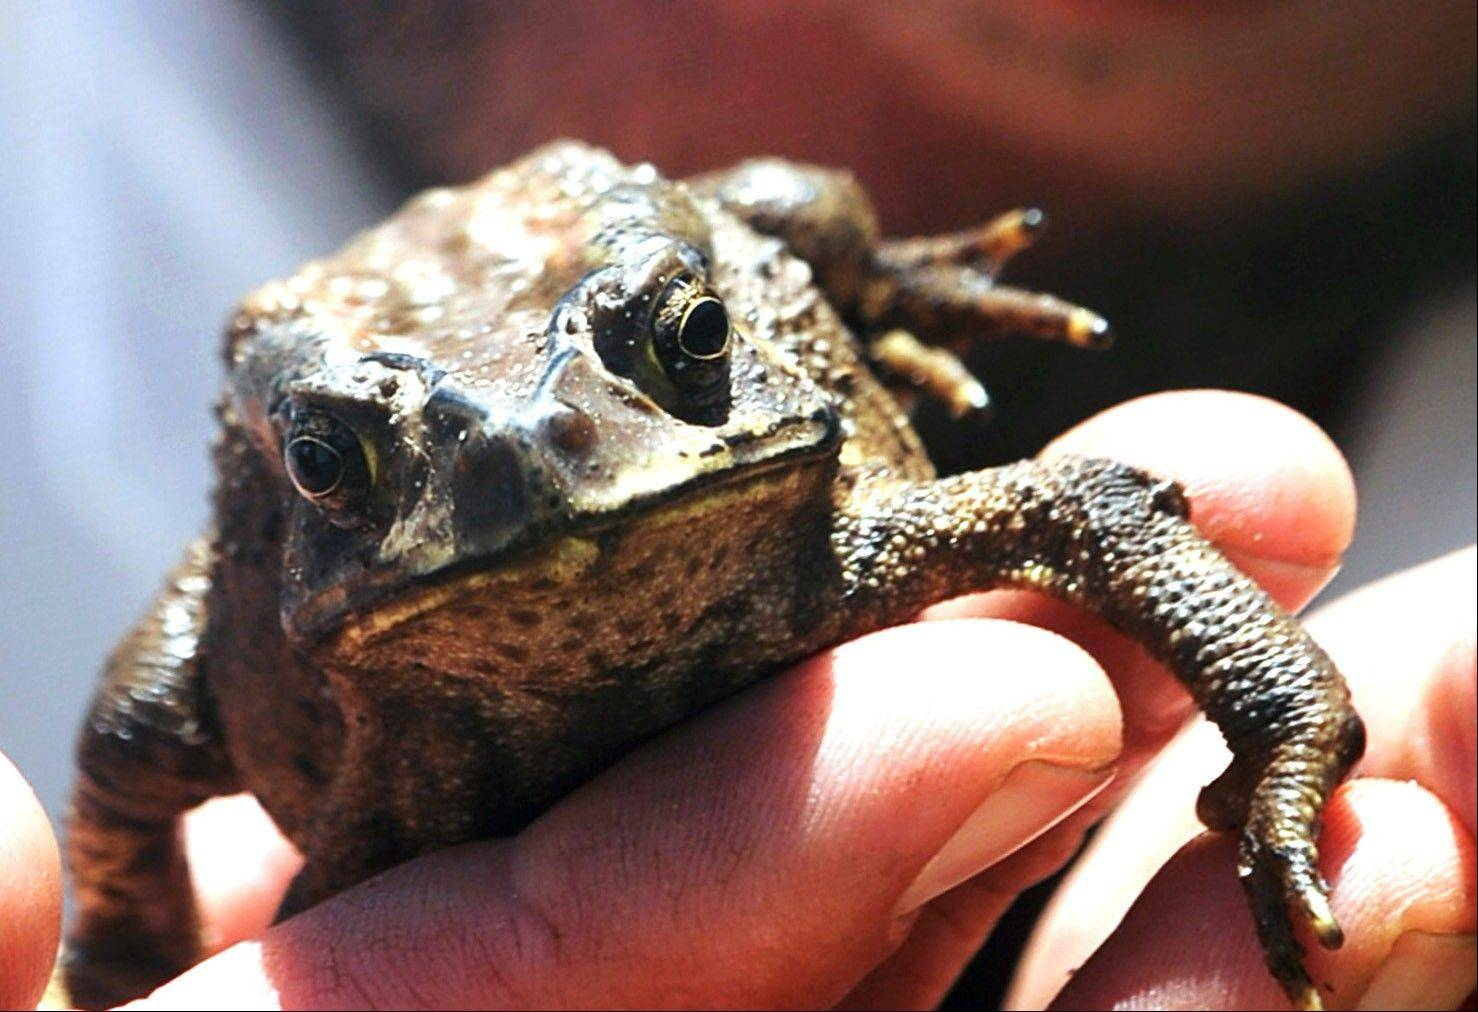 This Asian toad, shown here Wednesday, was found inside a candlestick at a Cape Town South Africa store.